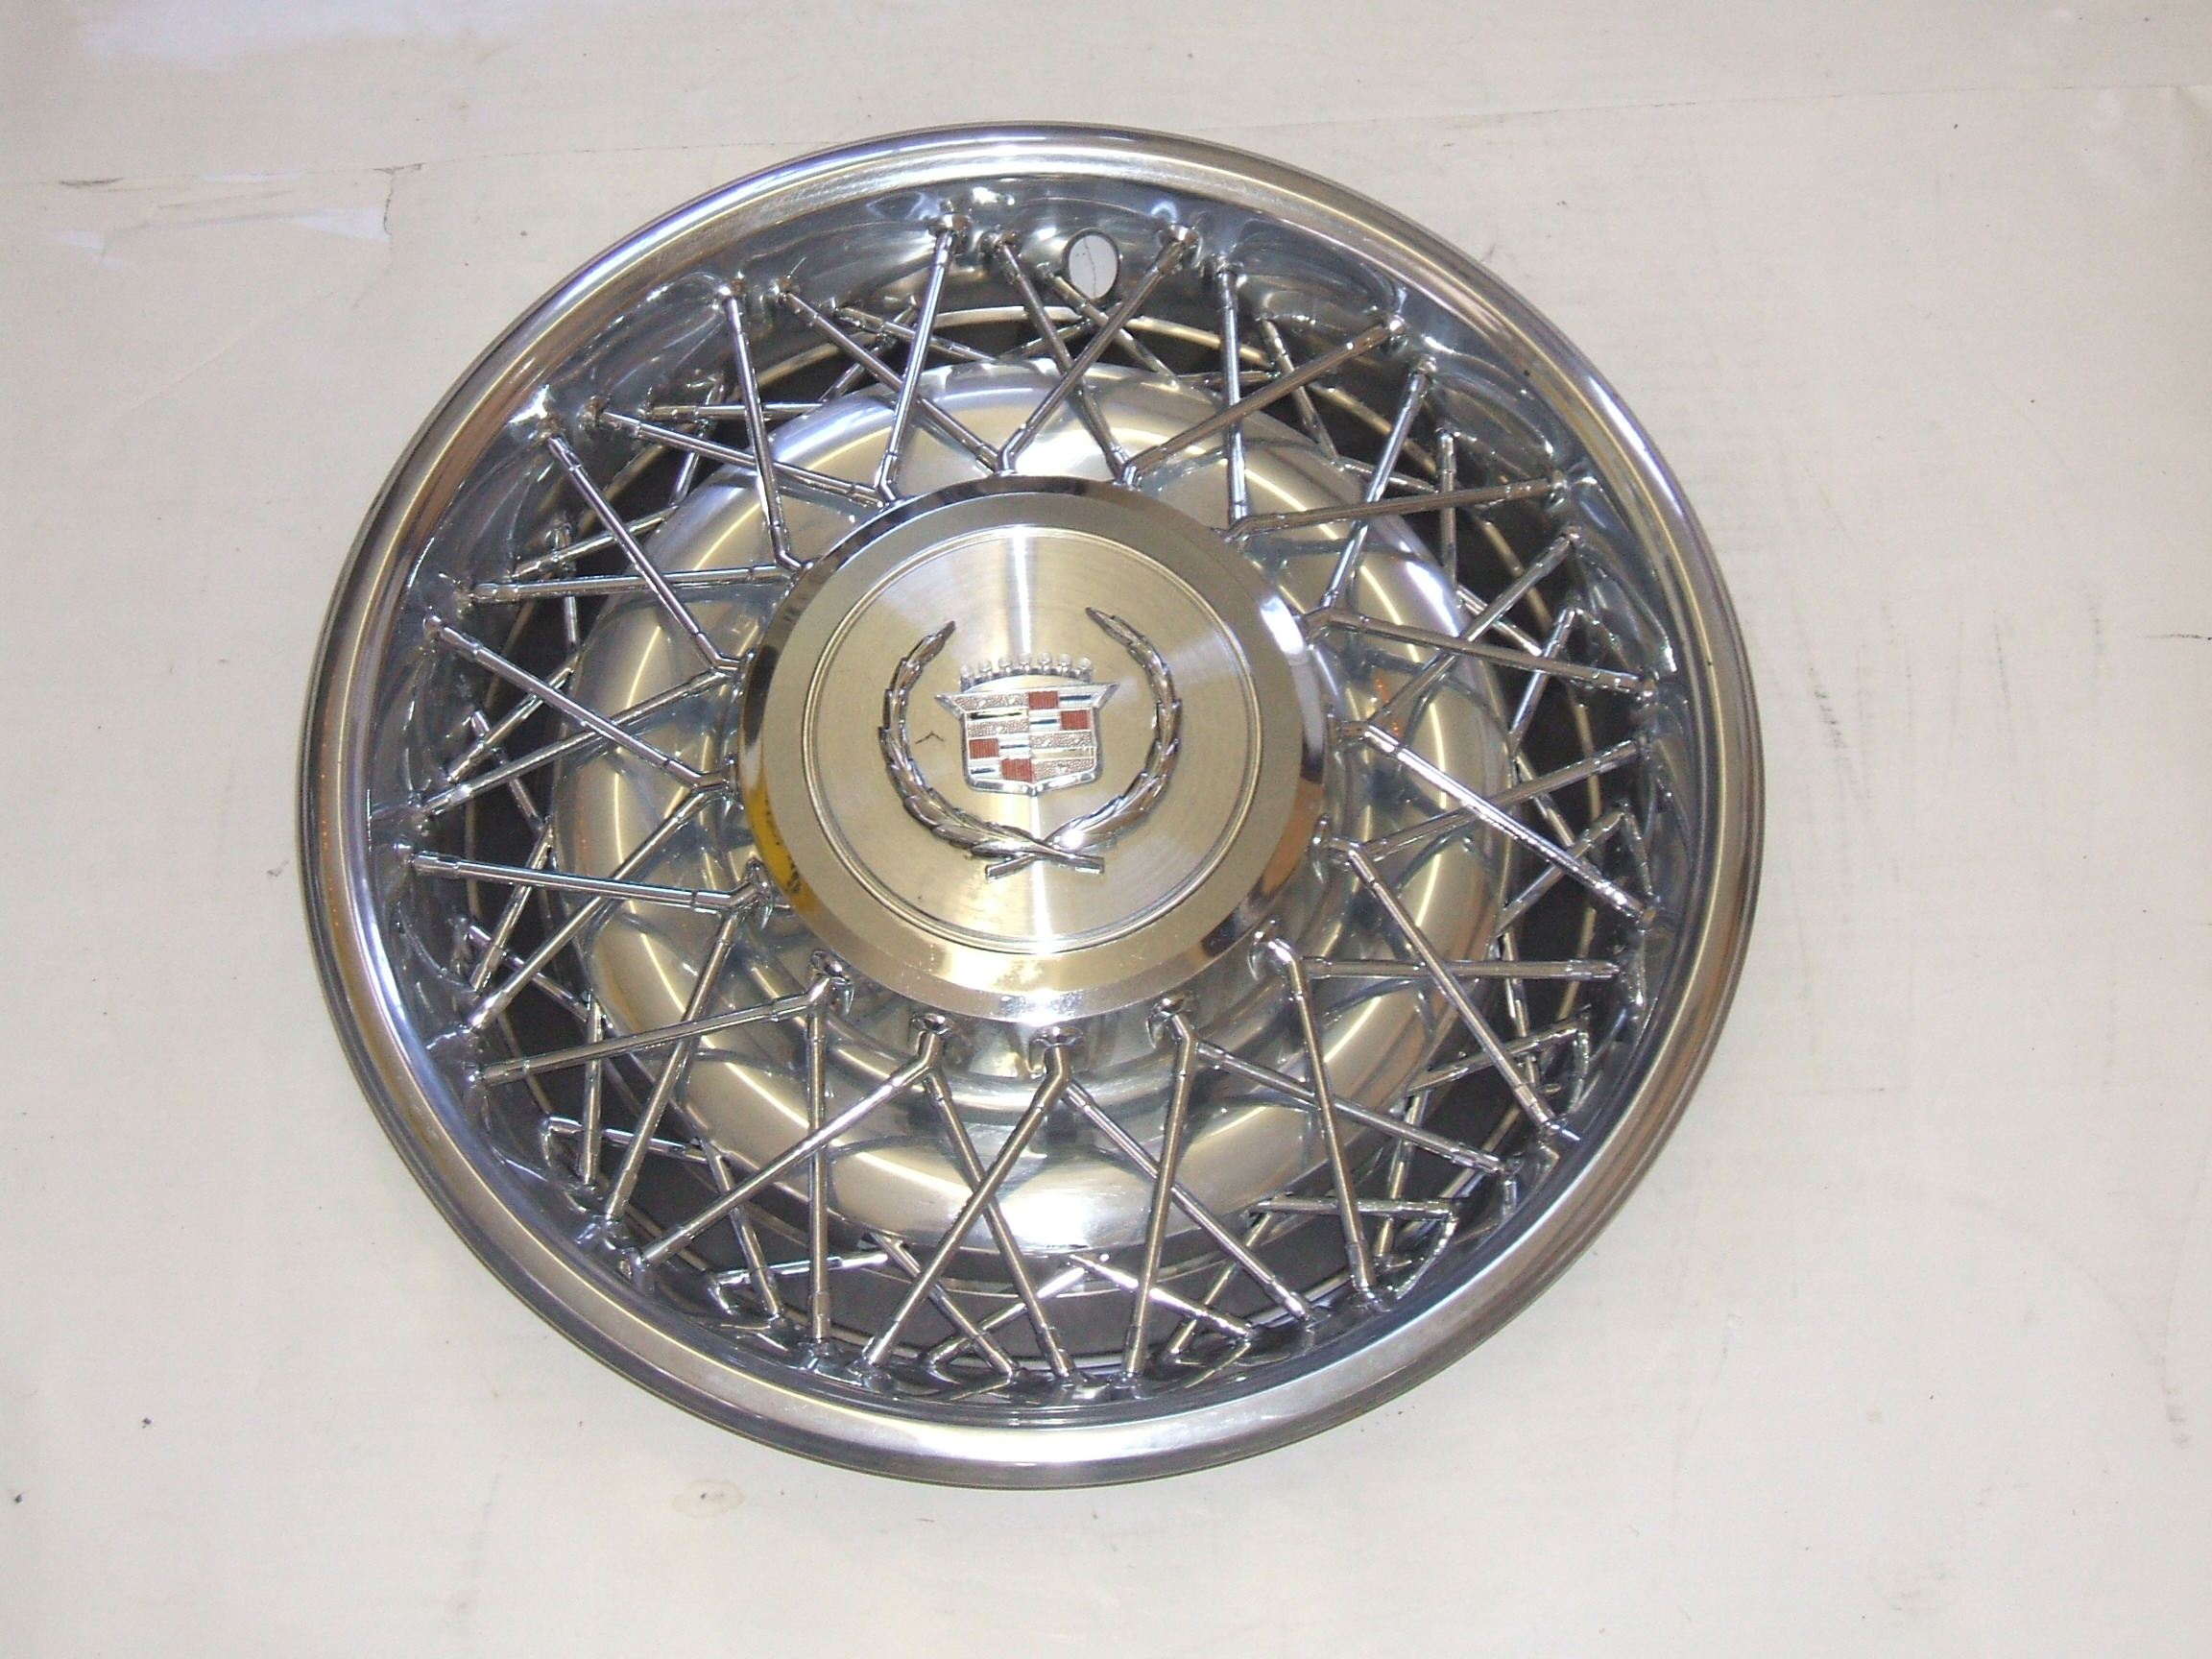 "Cadillac Seville Fleetwood 75-85 15"" Wire Hubcap 2044 P/N 16725"